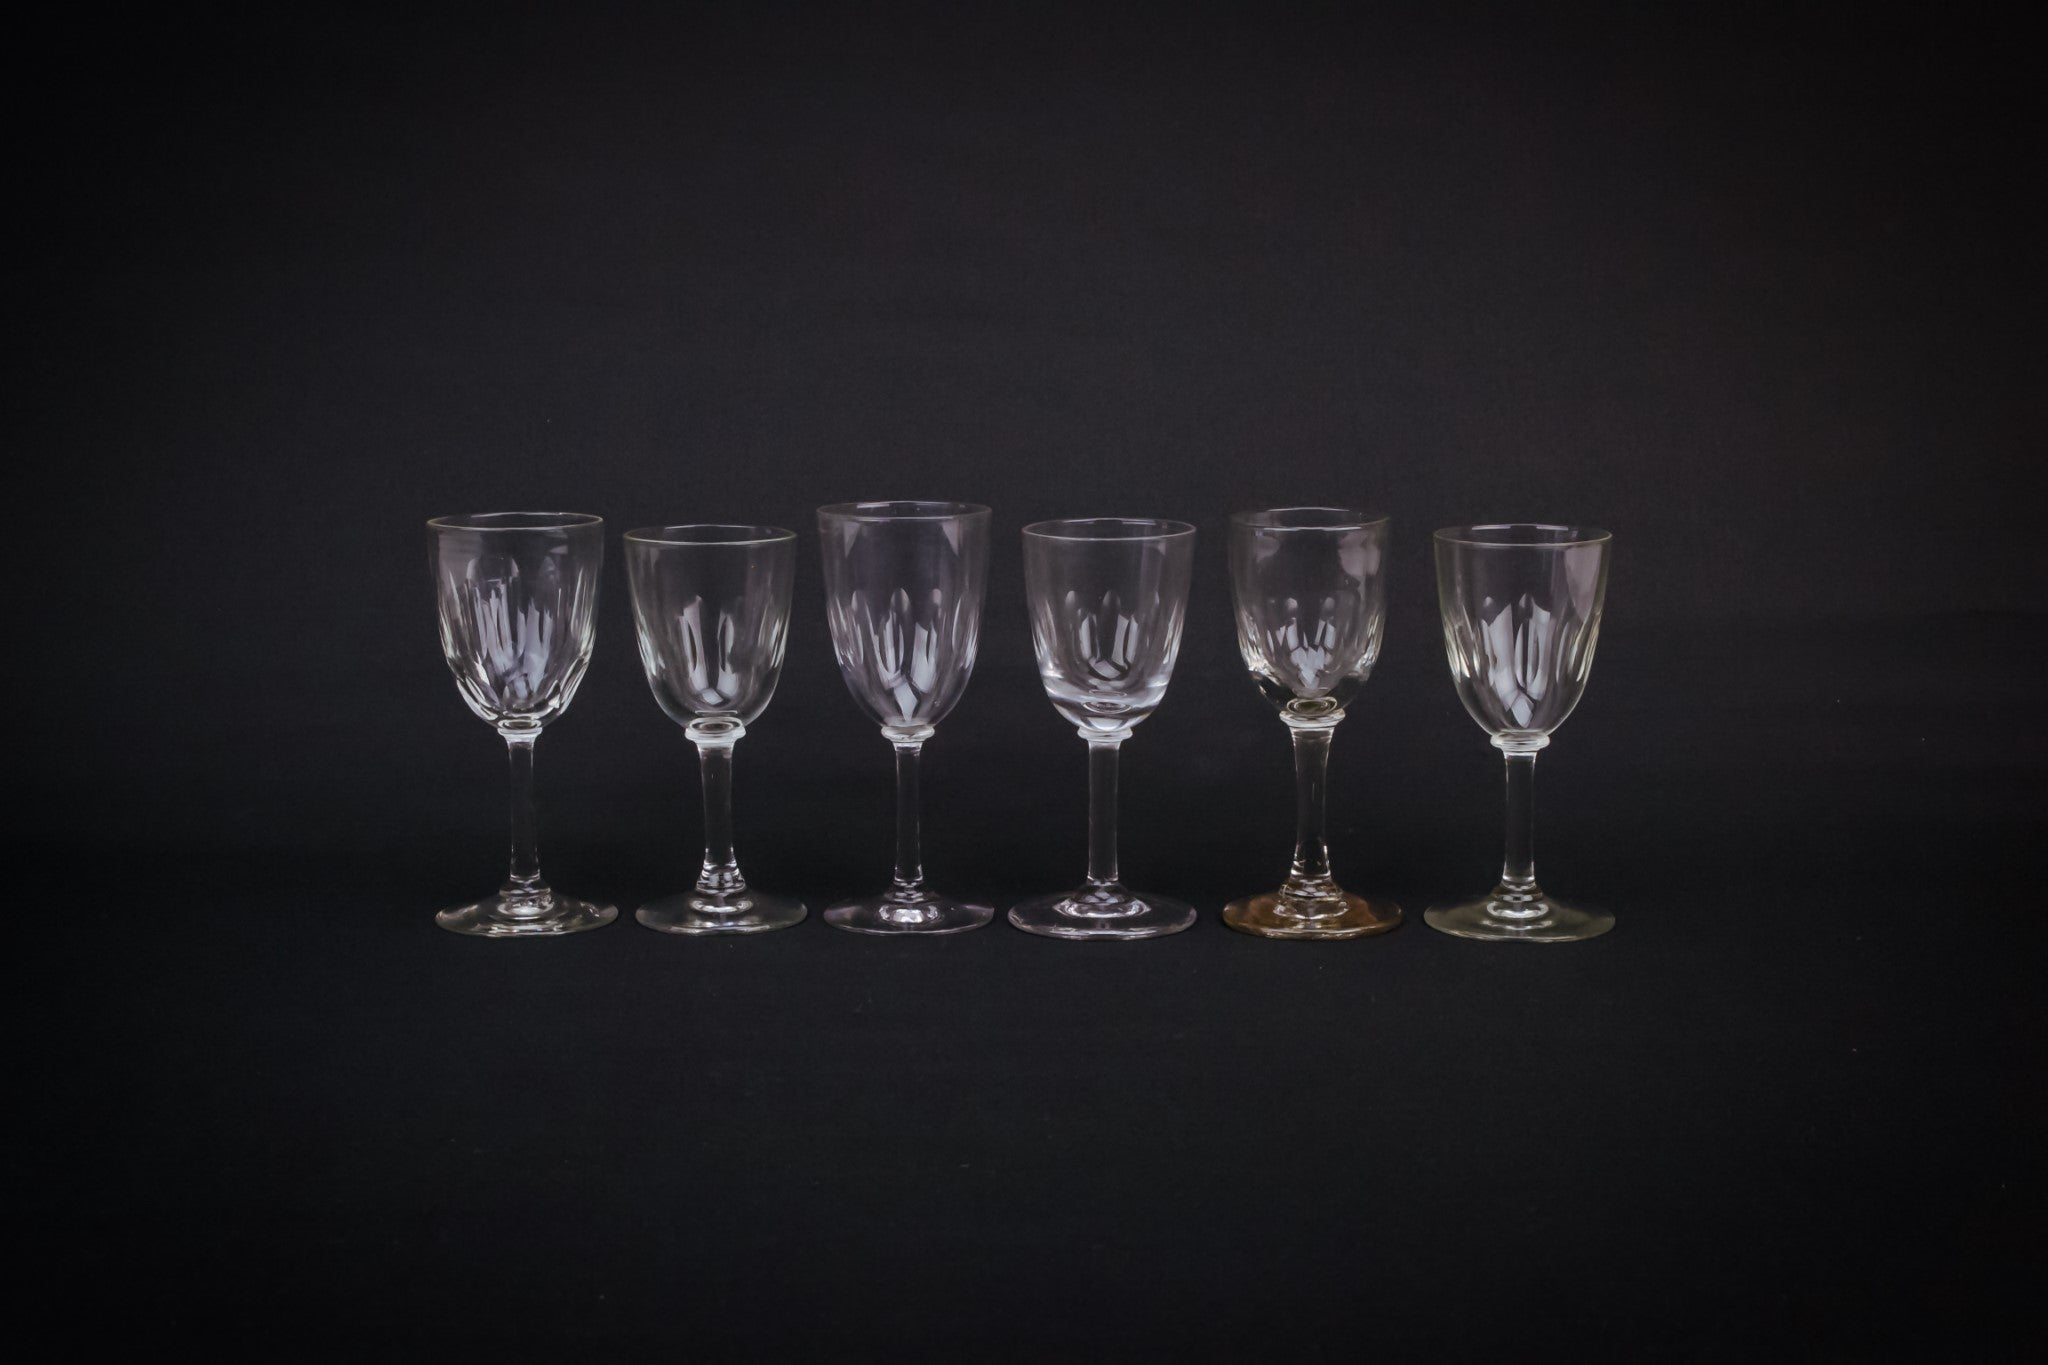 6 small port glasses